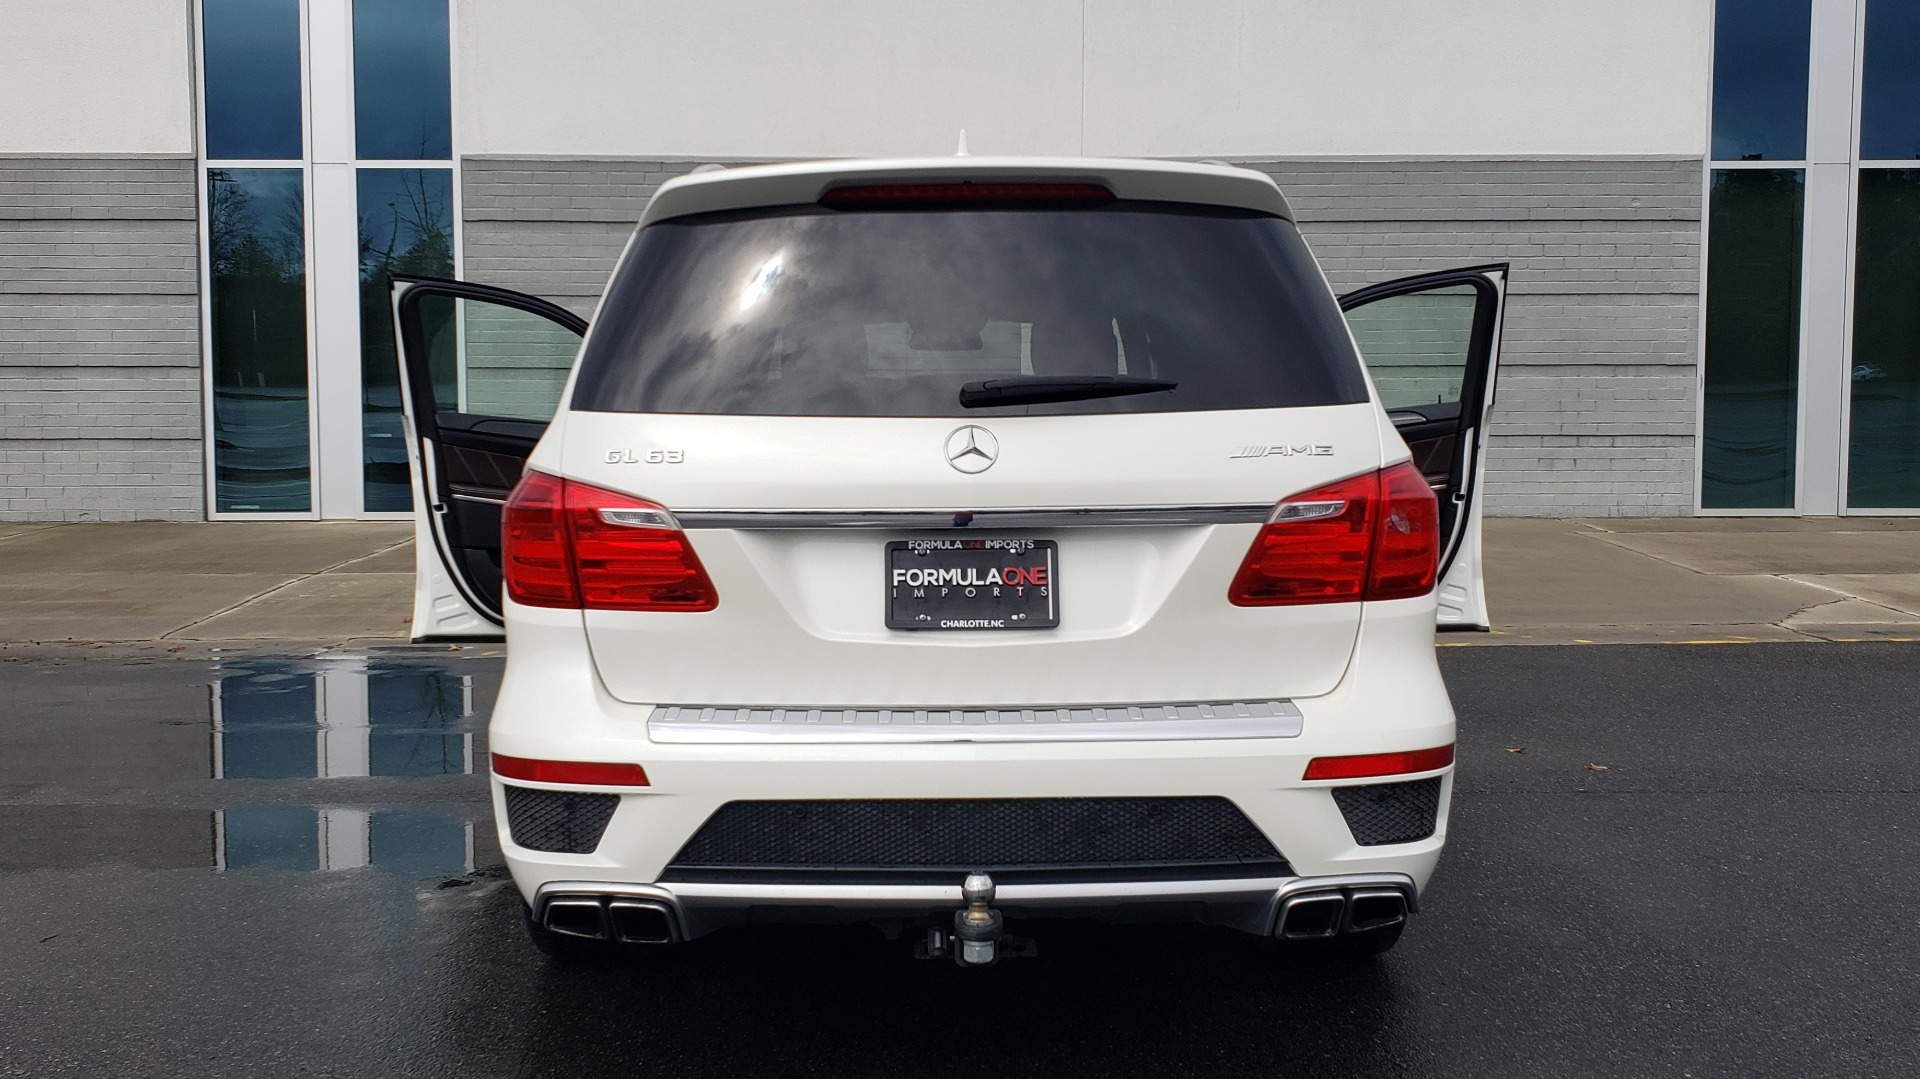 Used 2014 Mercedes-Benz GL-CLASS GL 63 AMG 4MATIC / NIGHT VIEW ASSIST PLUS / BANG & OLUFSEN SND for sale Sold at Formula Imports in Charlotte NC 28227 32